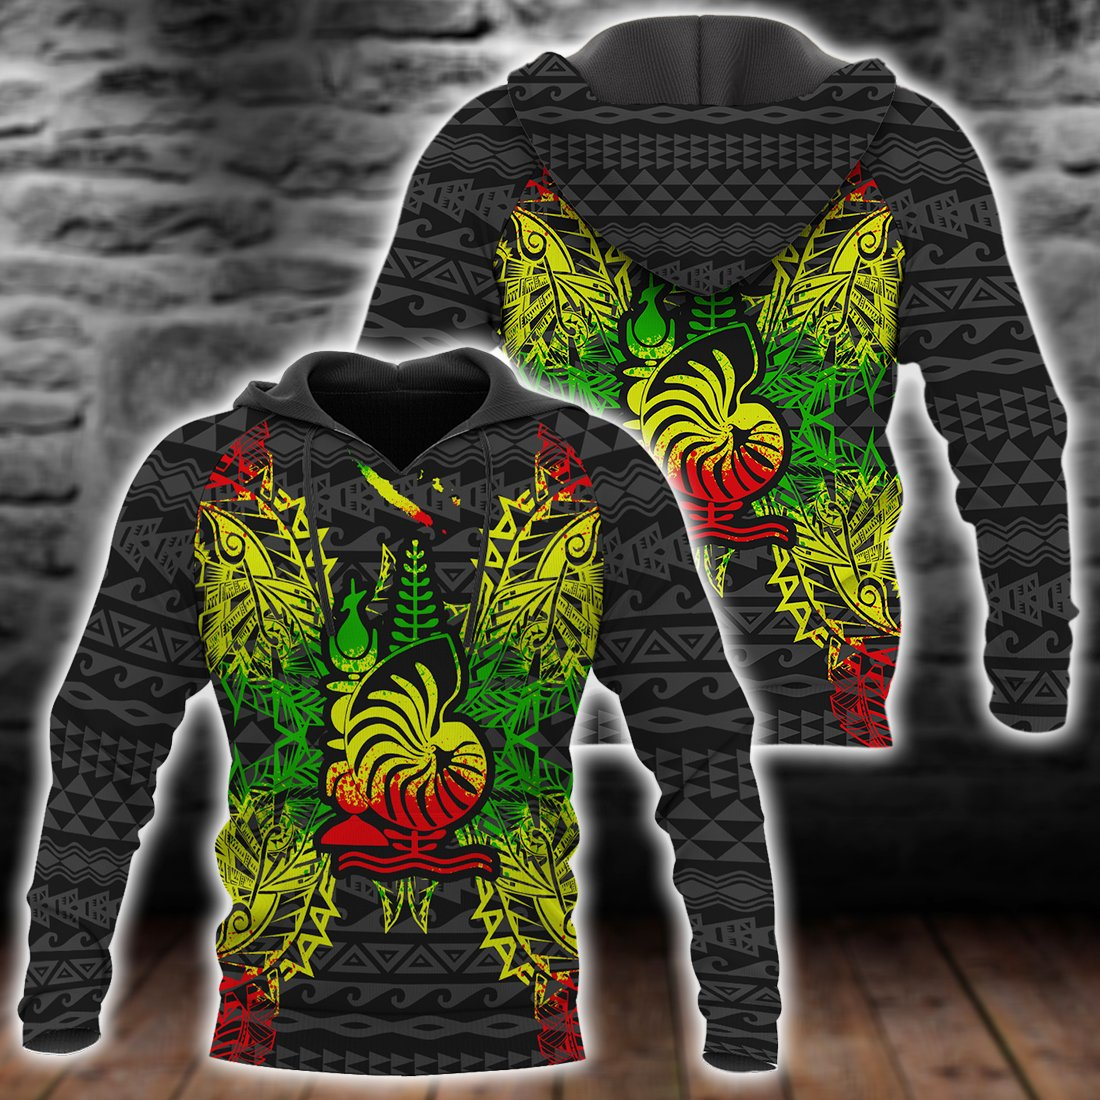 New Caledonia Polynesian Men_s Bomber Jacket Map Reggae All Over Print - luxamz